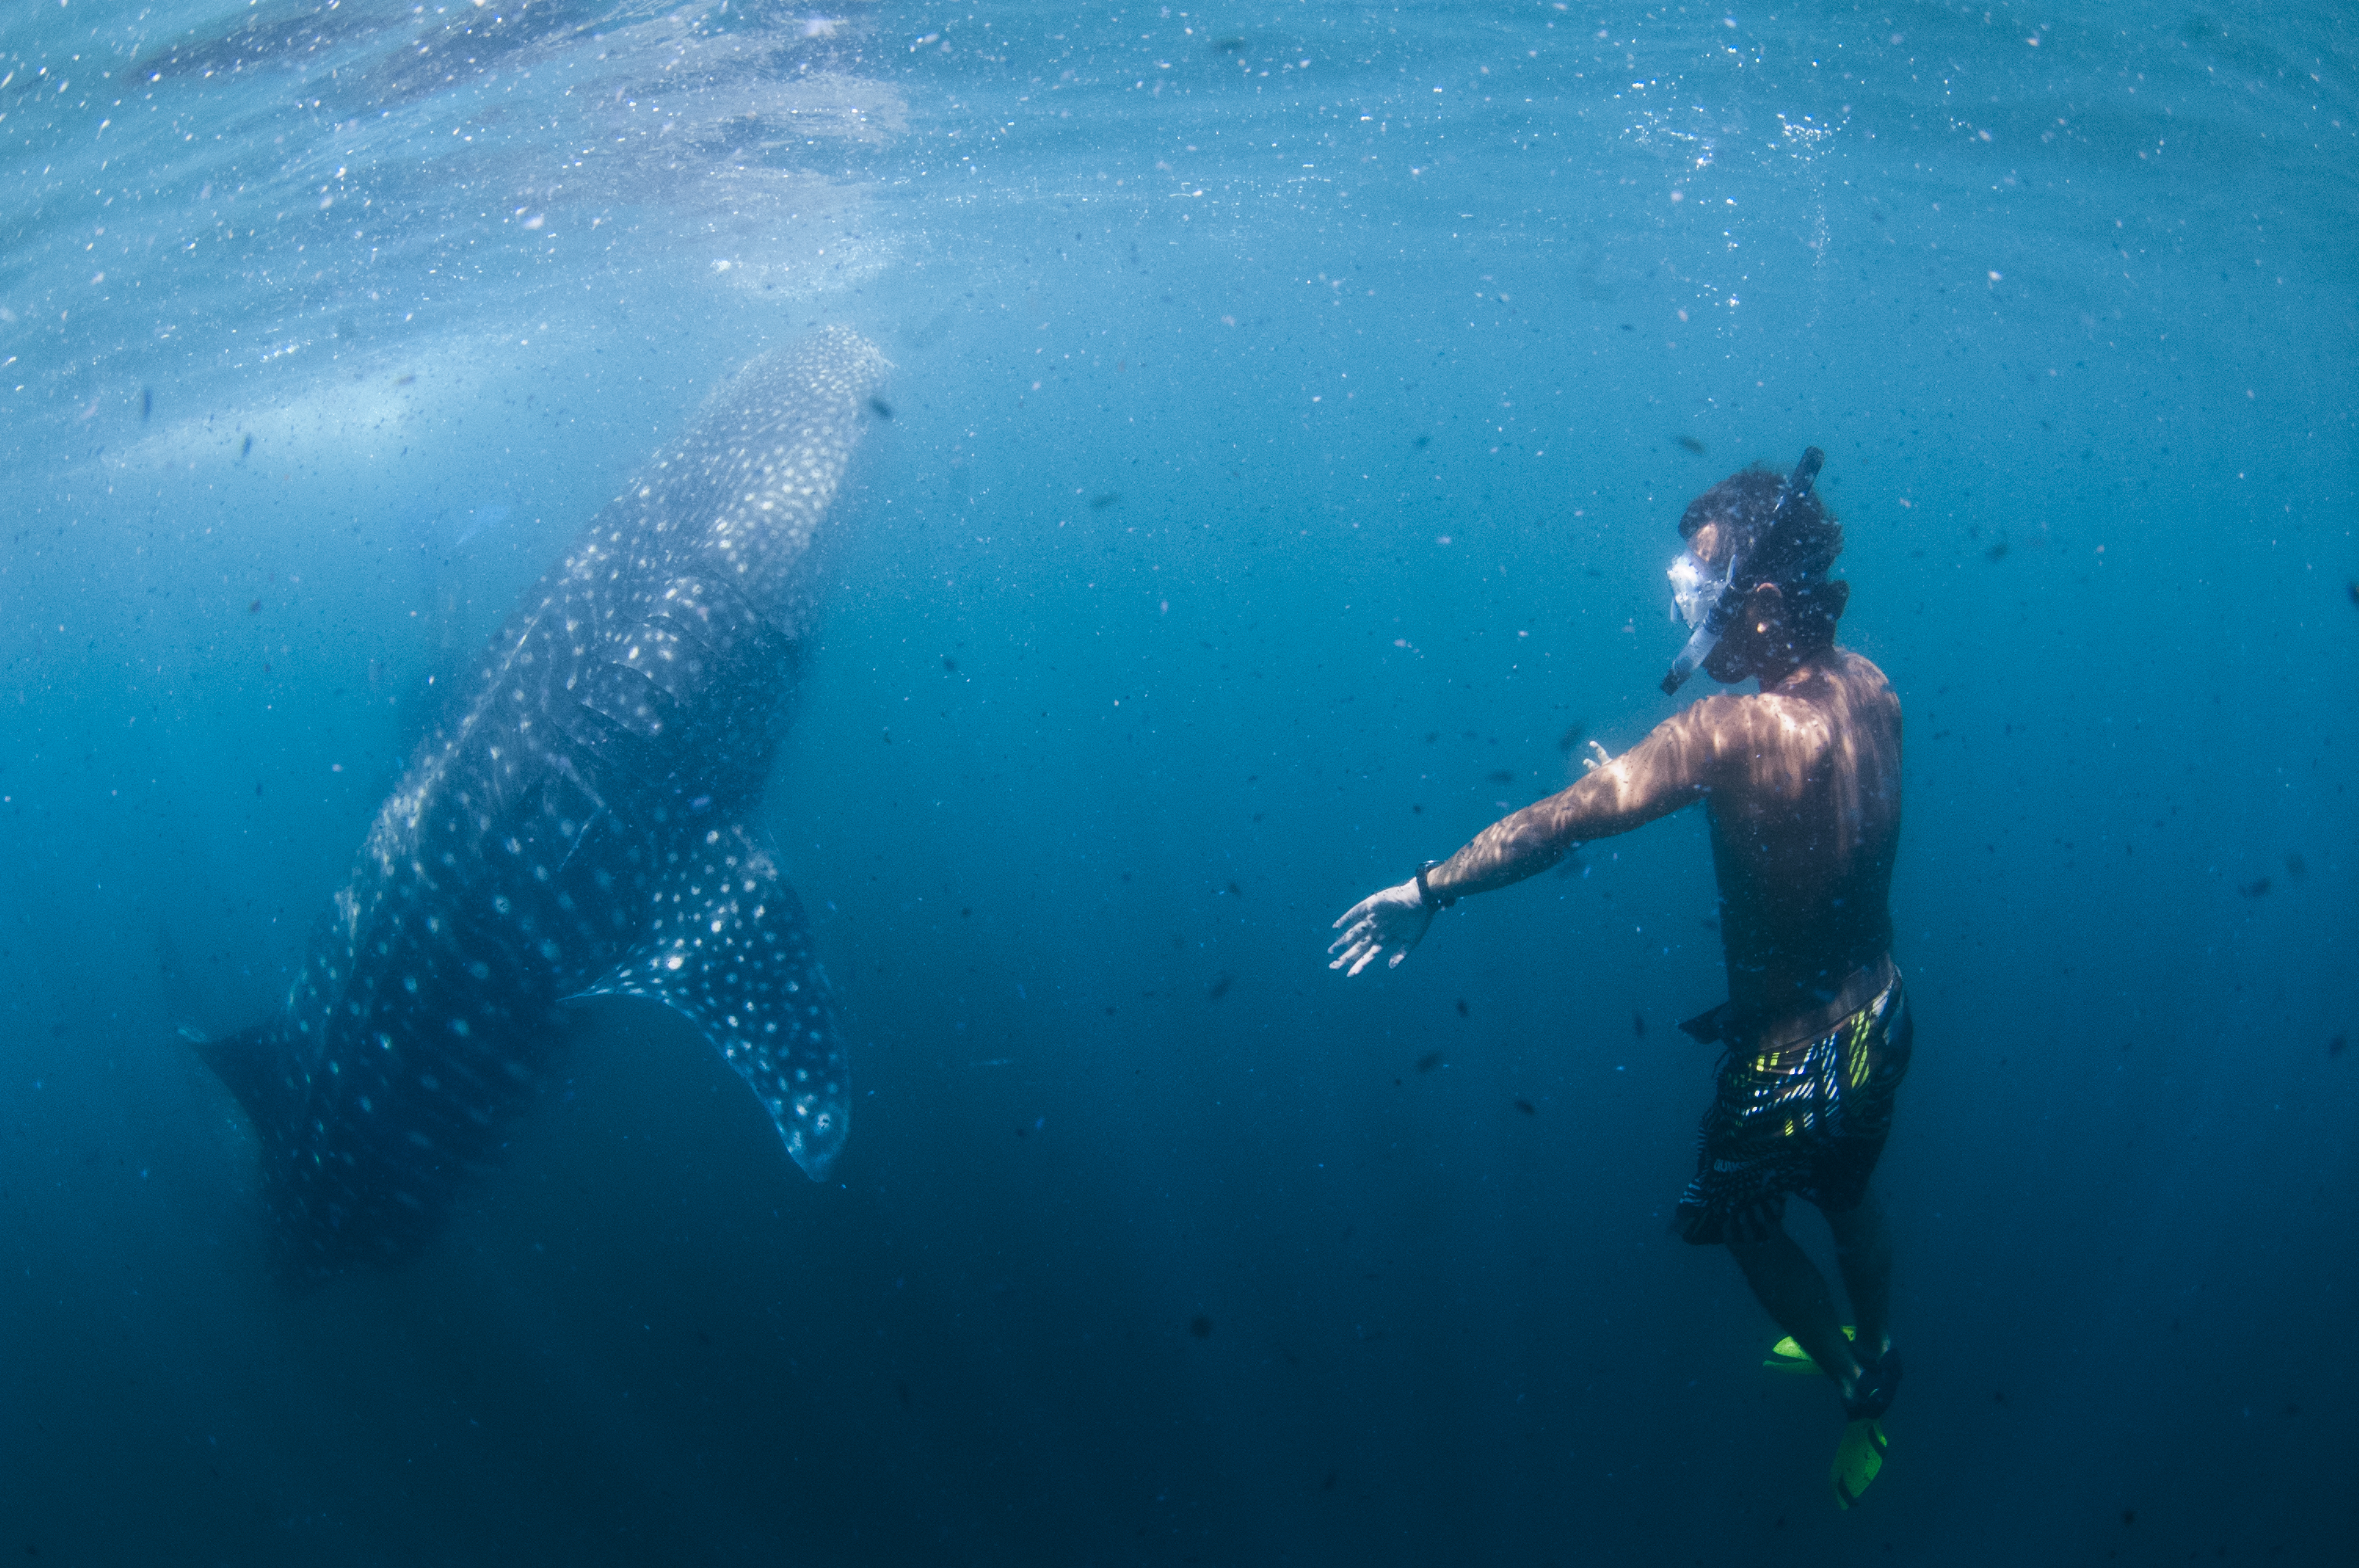 Swimming with ocean giants